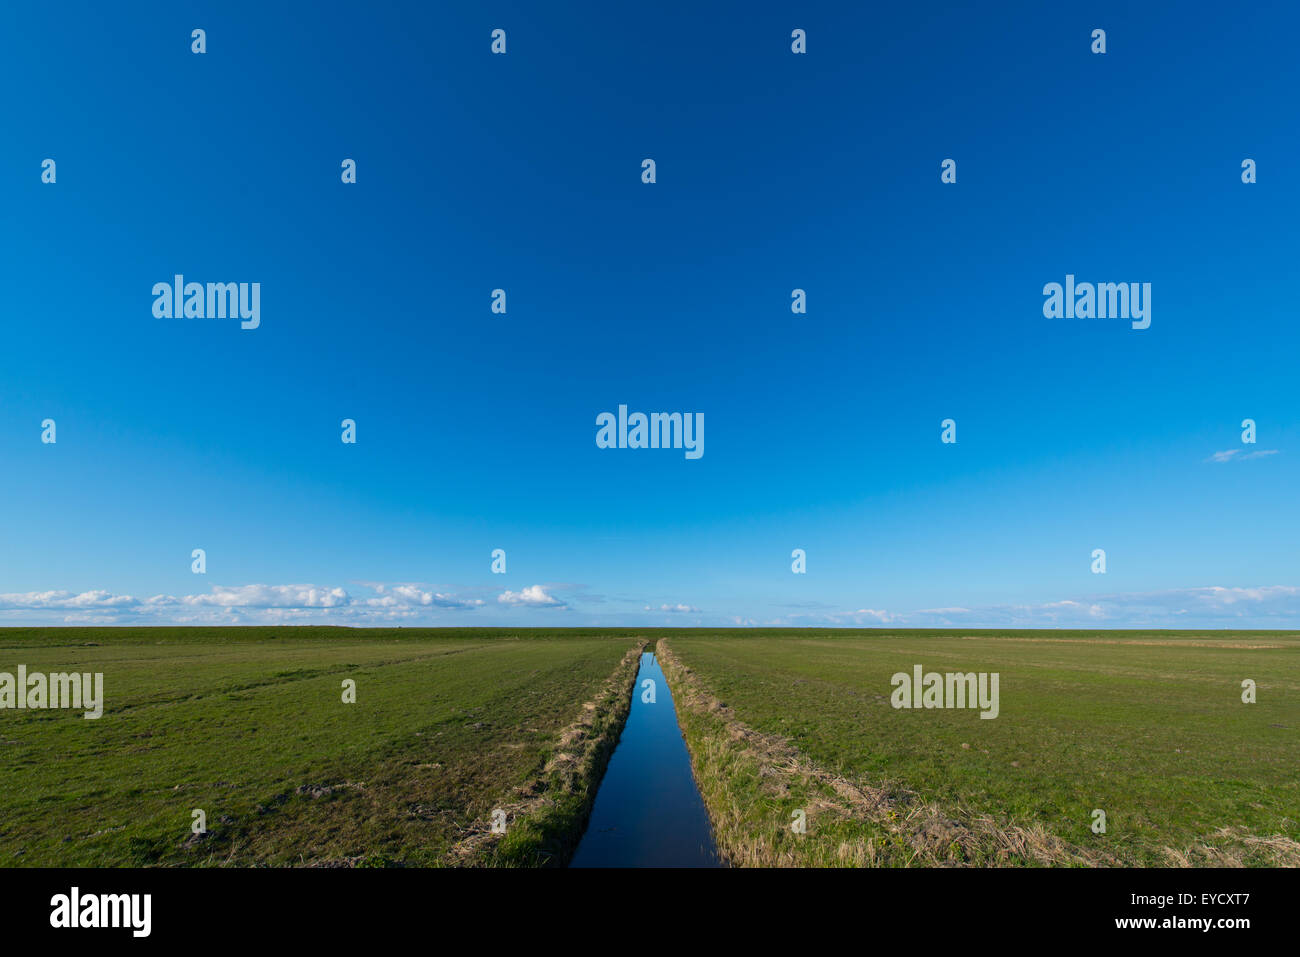 A green Dutch polder (reclaimed land) and its ditches & gullies reflecting the blue winter sky running to infinity - Stock Image